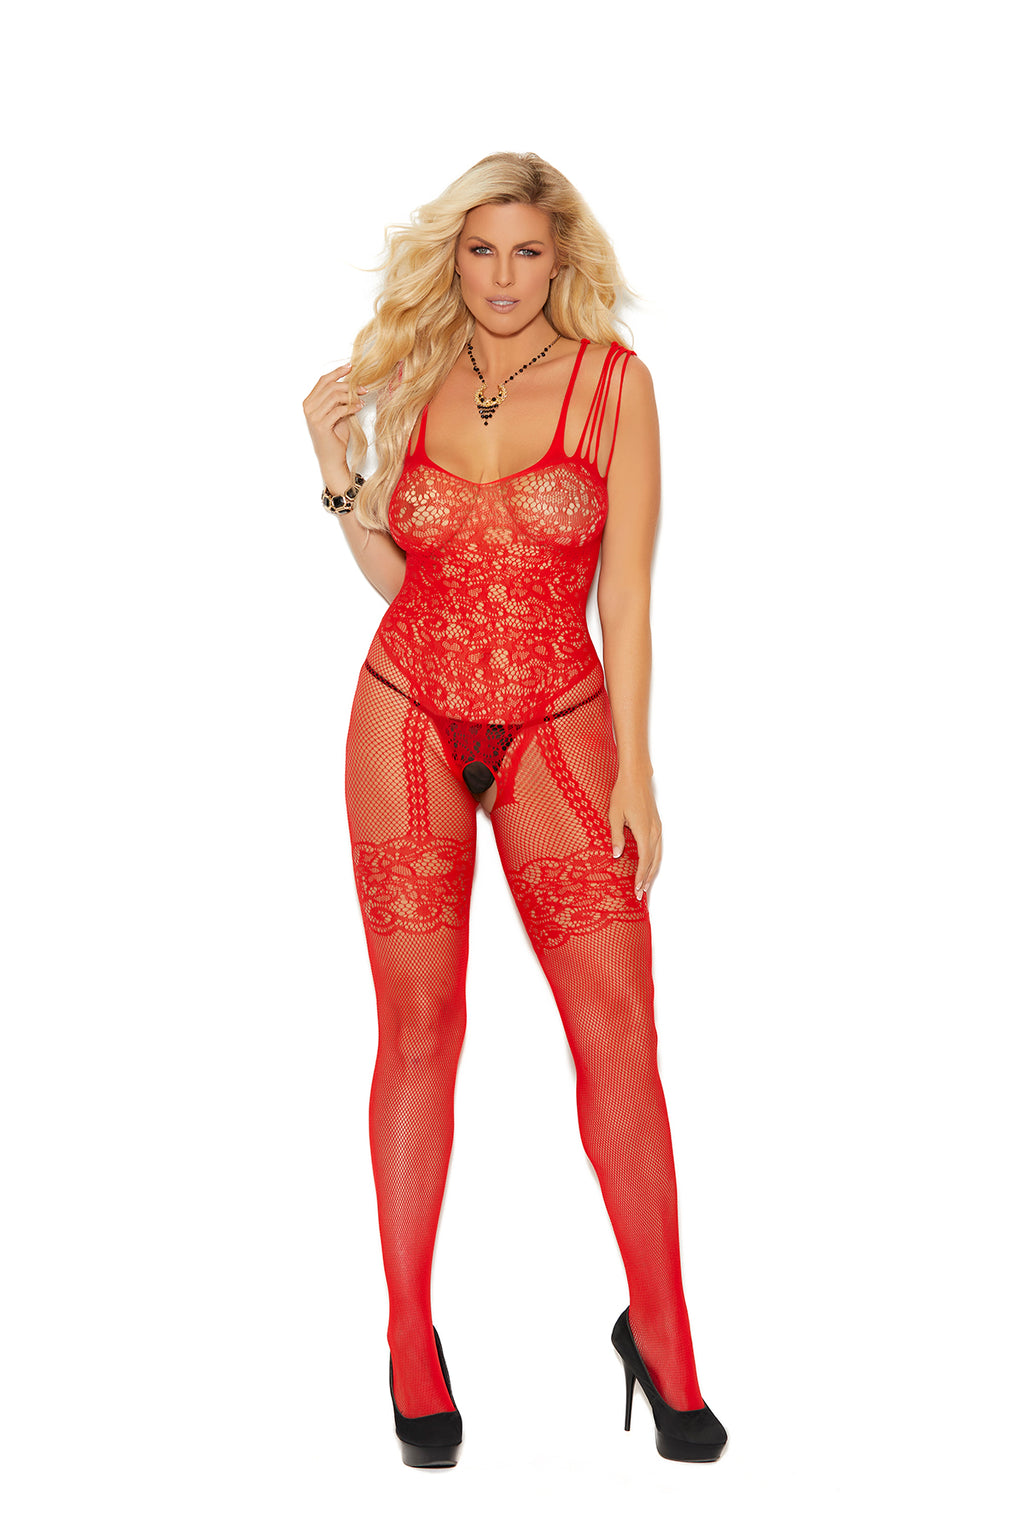 Fishnet and Lace Bodystocking With Open Crotch - Queen Size - Red - Elegant Moments -  Los Angeles Lingerie